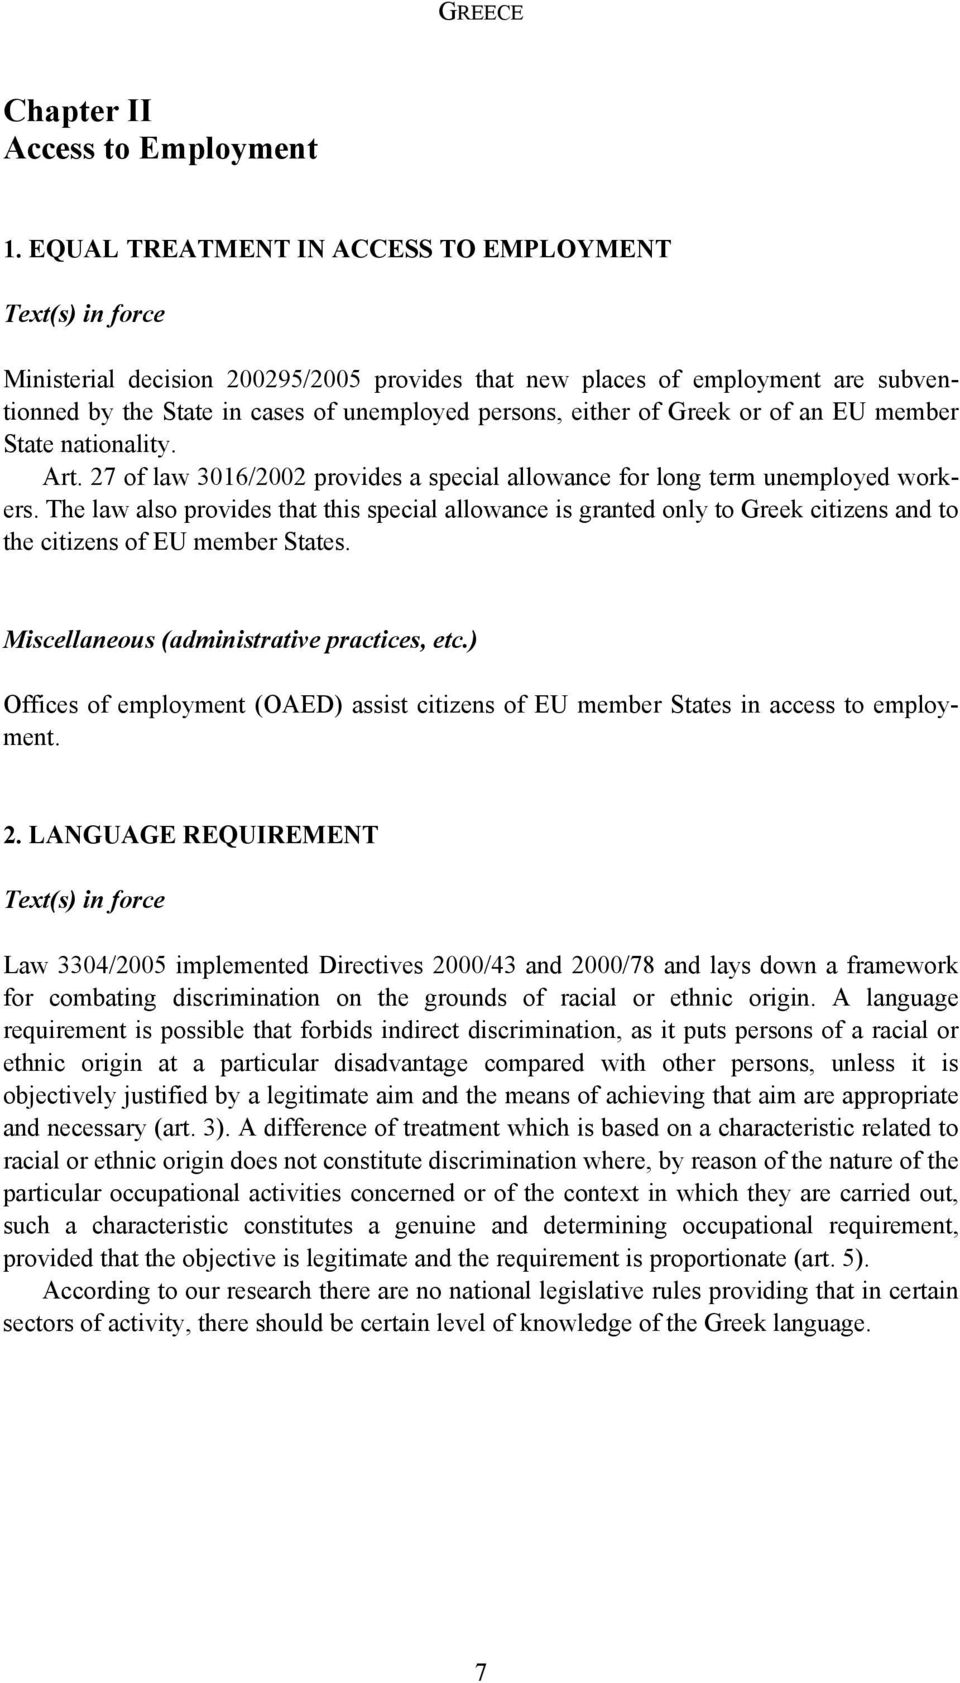 of Greek or of an EU member State nationality. Art. 27 of law 3016/2002 provides a special allowance for long term unemployed workers.